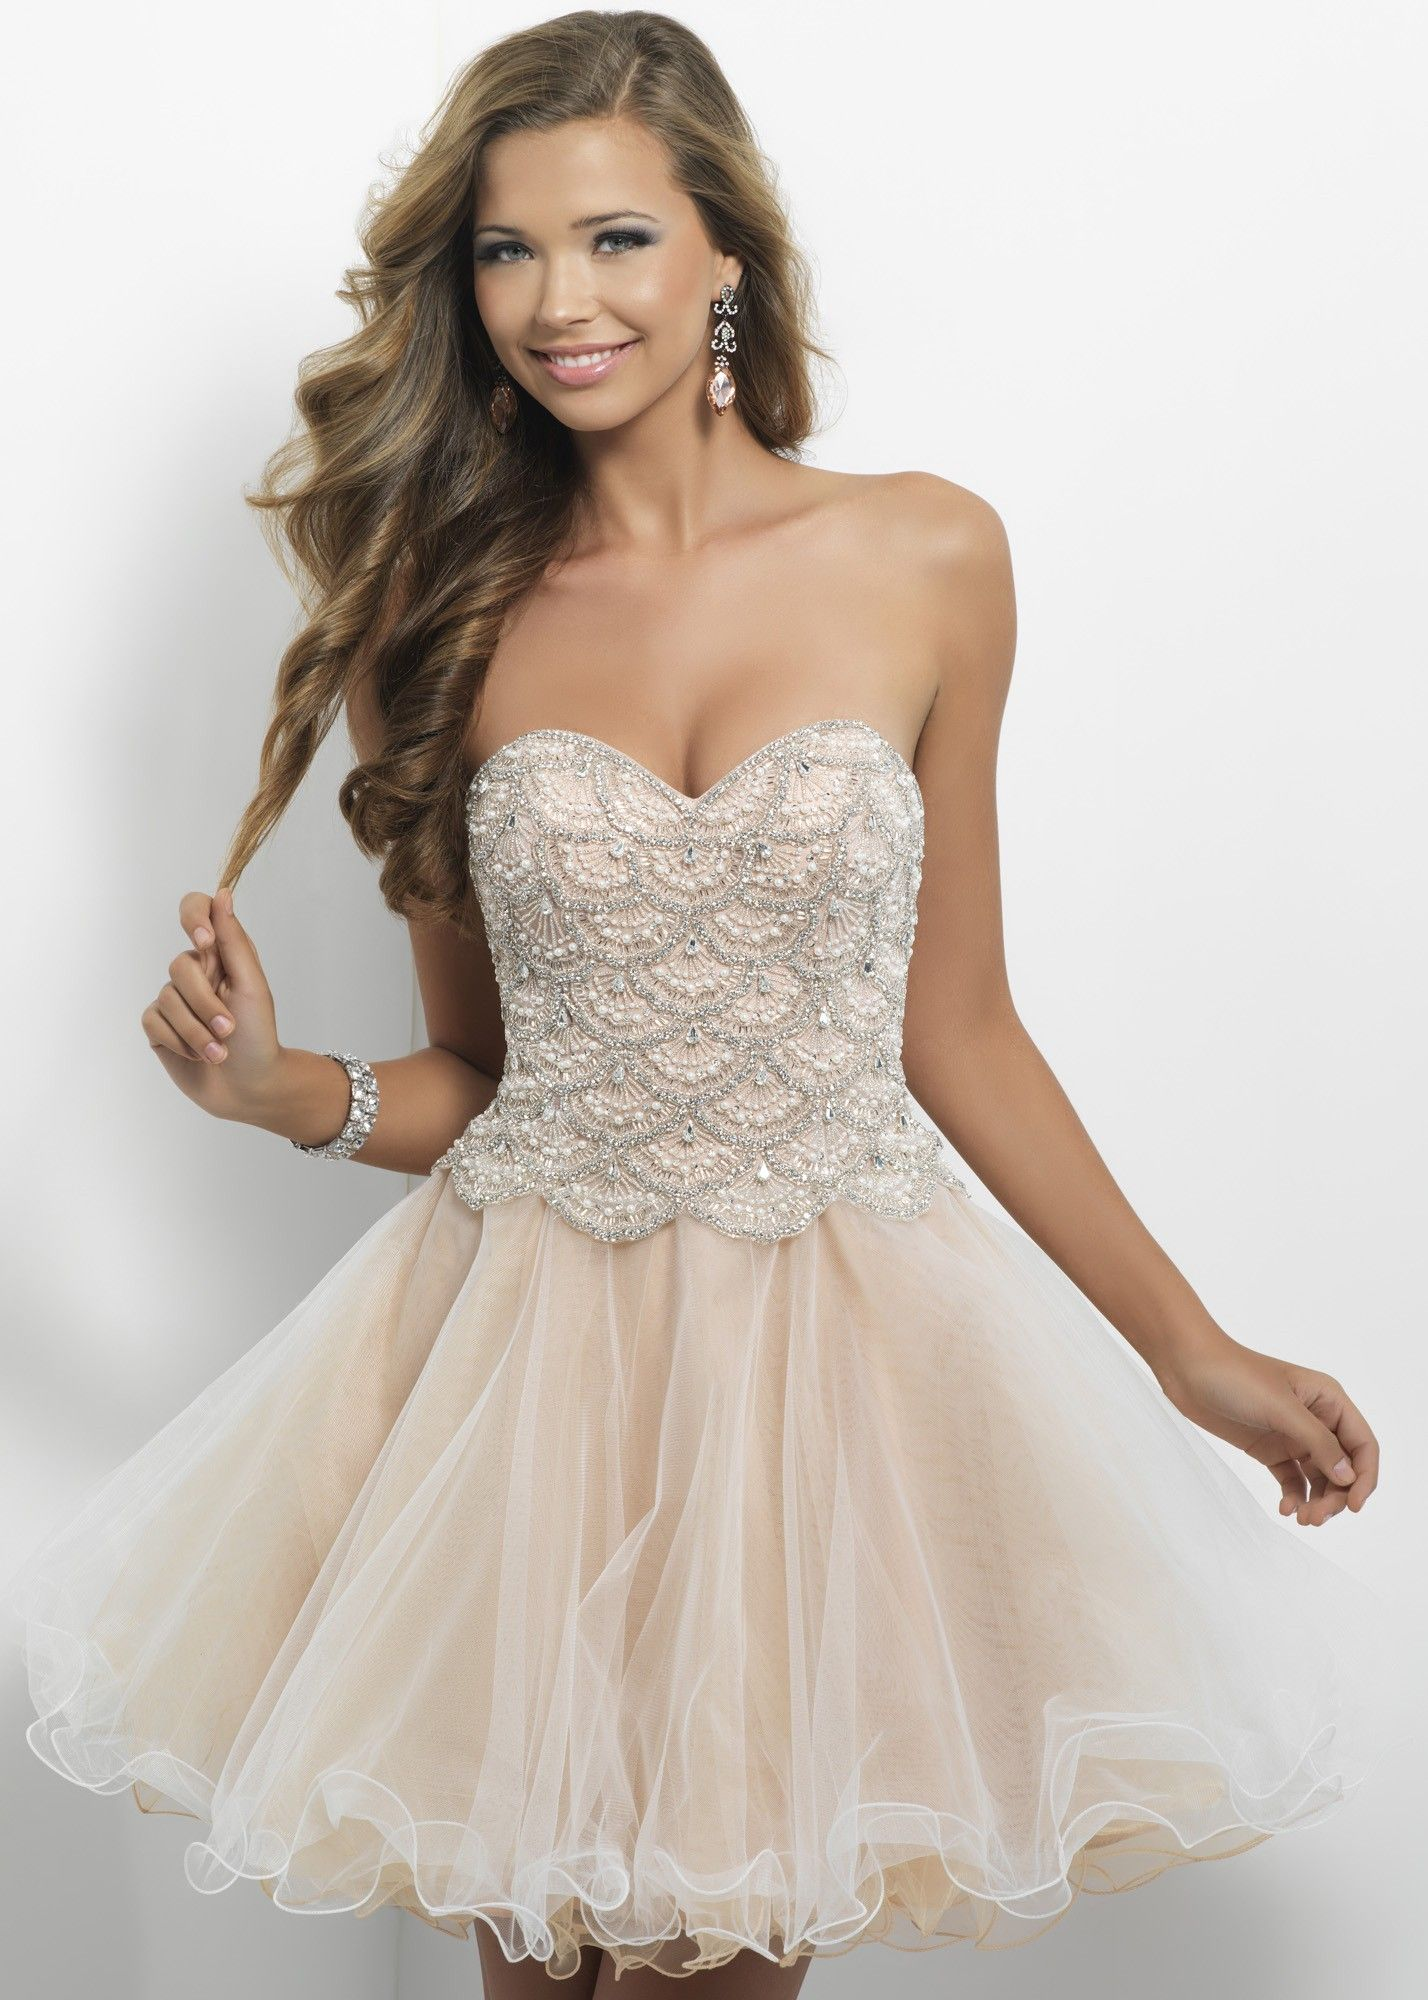 Elegant beaded champagne cocktail dress blush prom